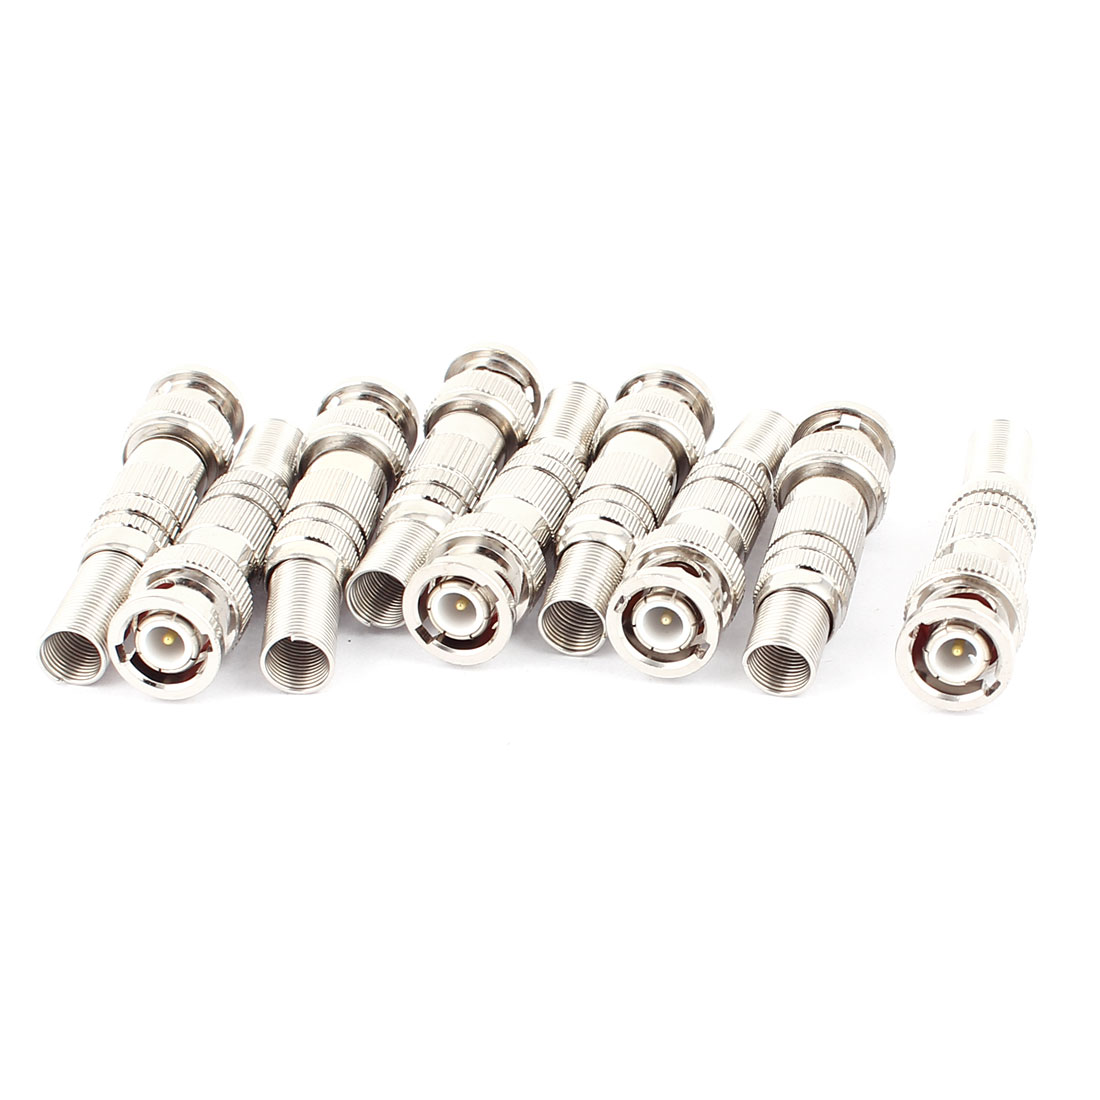 10Pcs Twist Spring Copper-plated BNC Male Adapter Connector for CCTV Camera